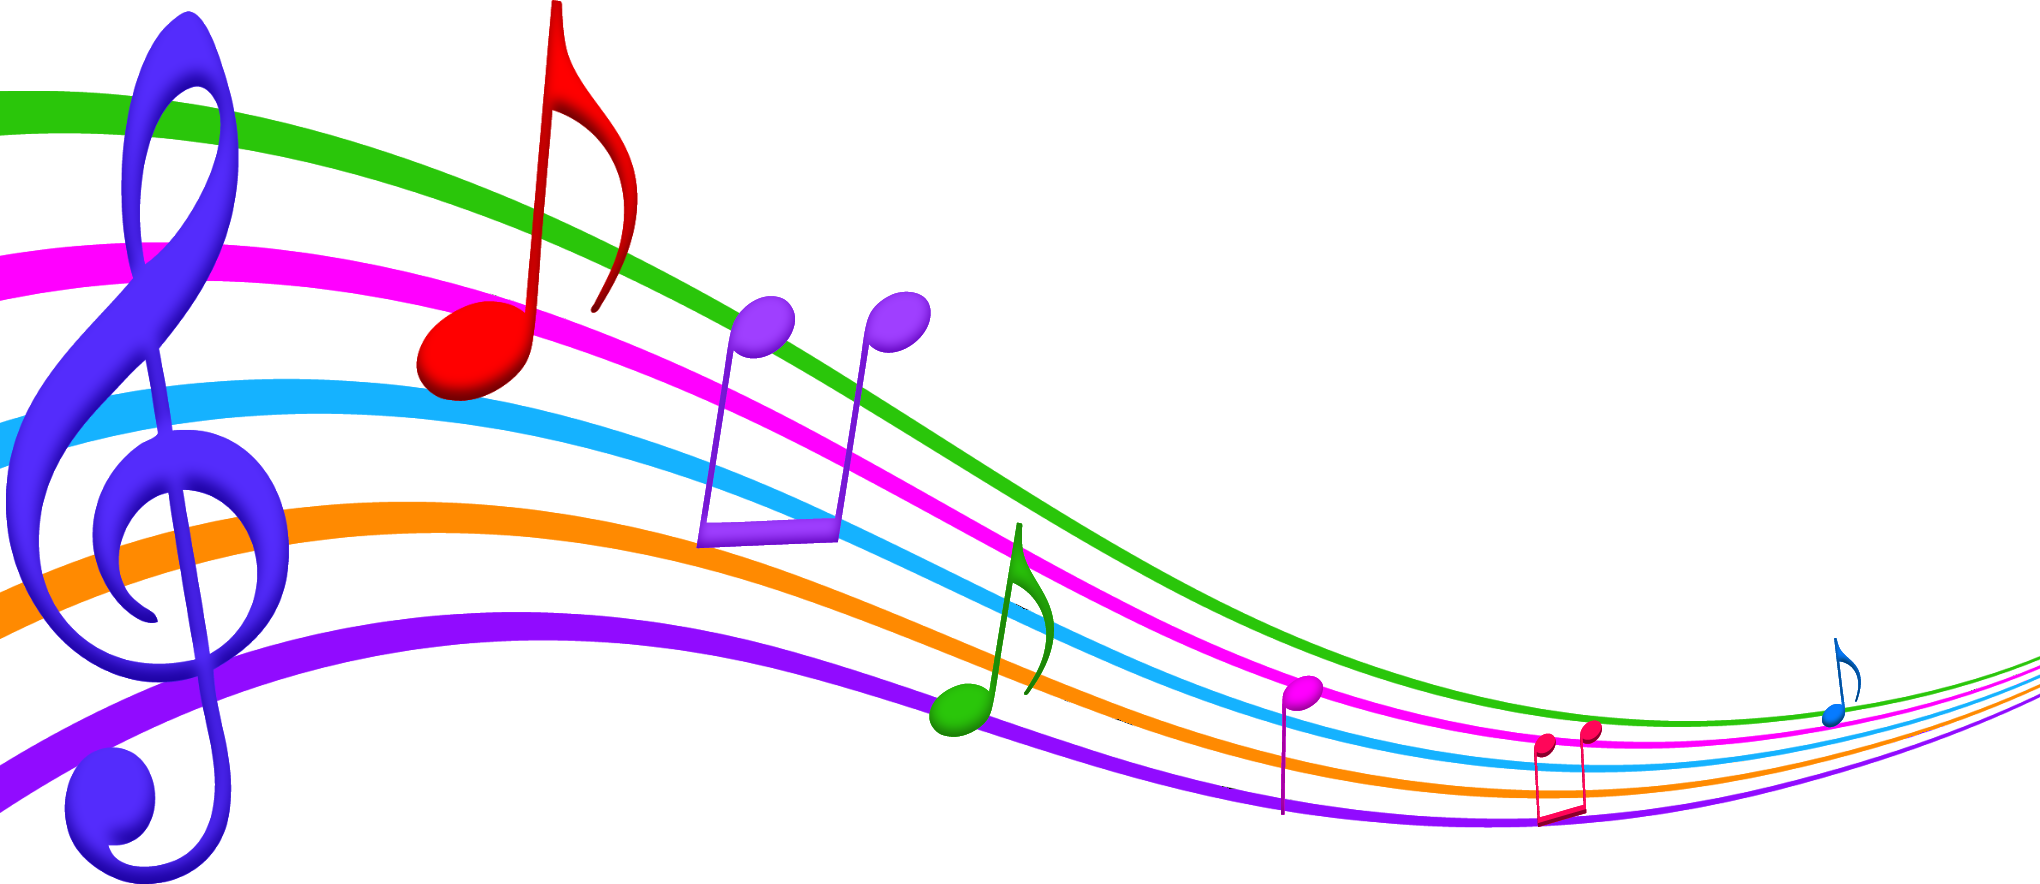 Music Notes Clip Art Free 4 10 From 63 Votes Music Notes Clip Art Free